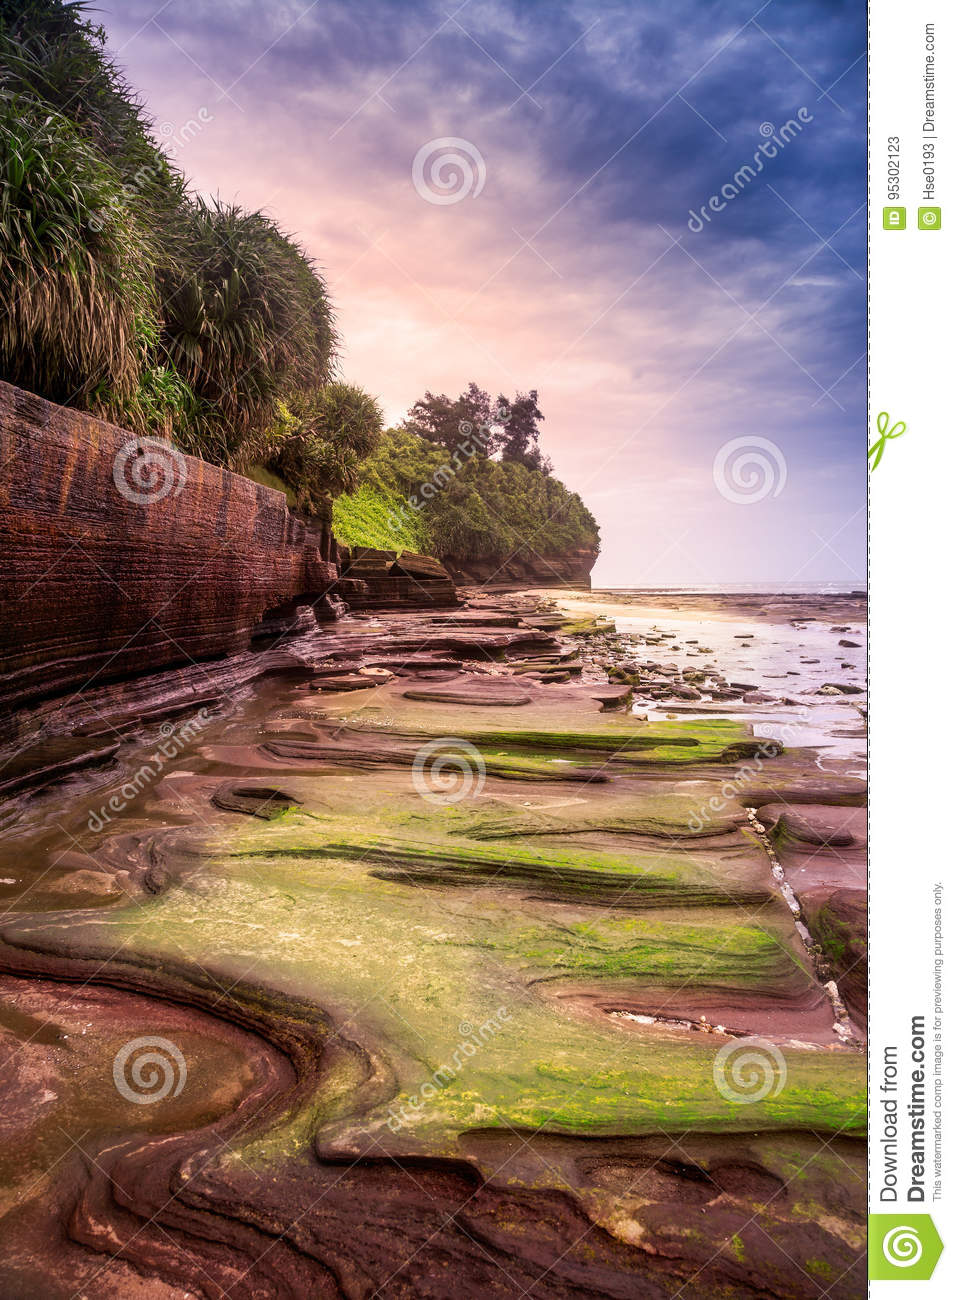 Volcanic rocks in the Colorful beach, Weizhou Island